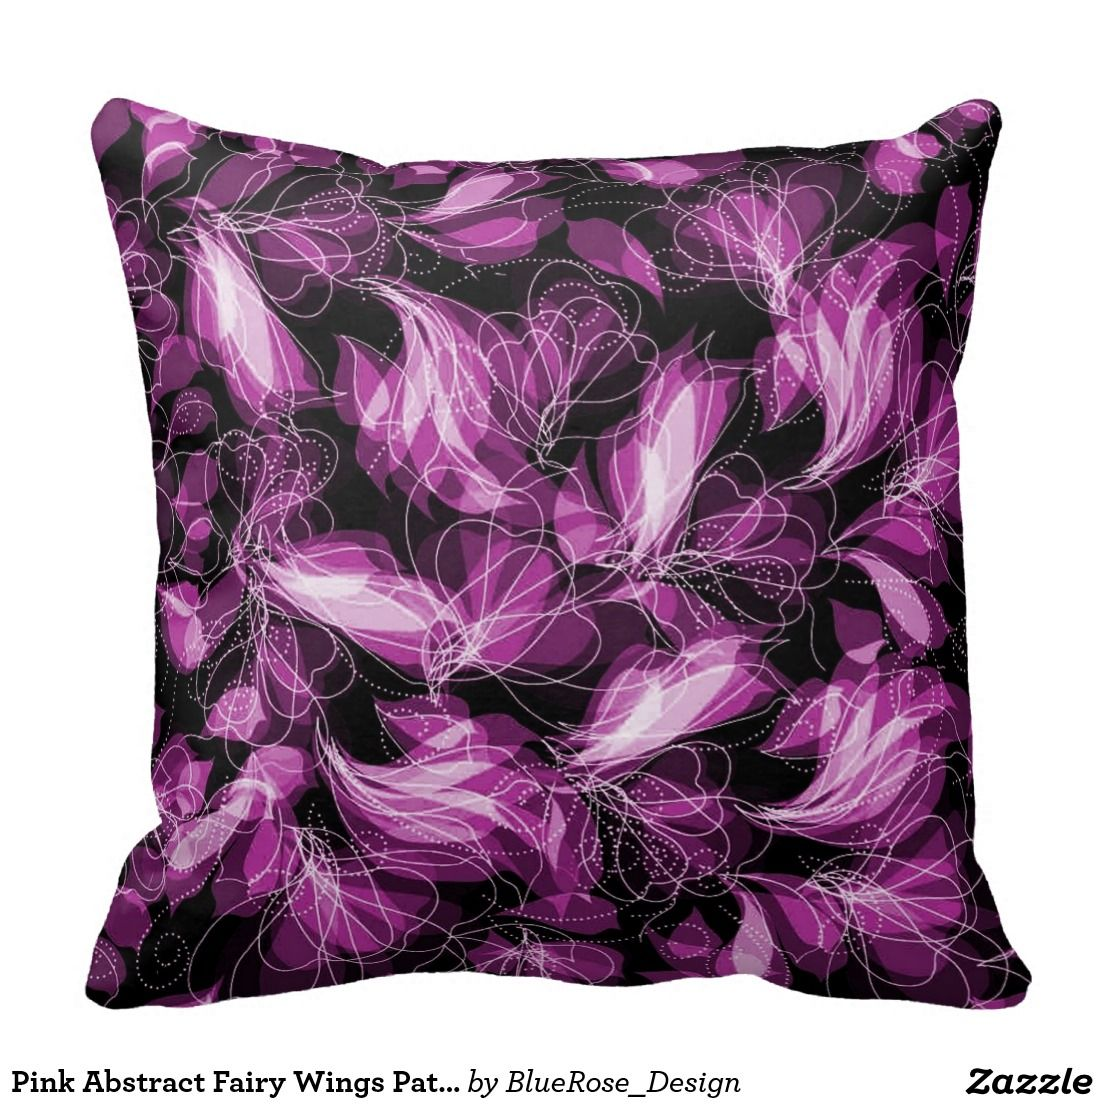 Pink abstract fairy wings pattern throw pillow available in pink